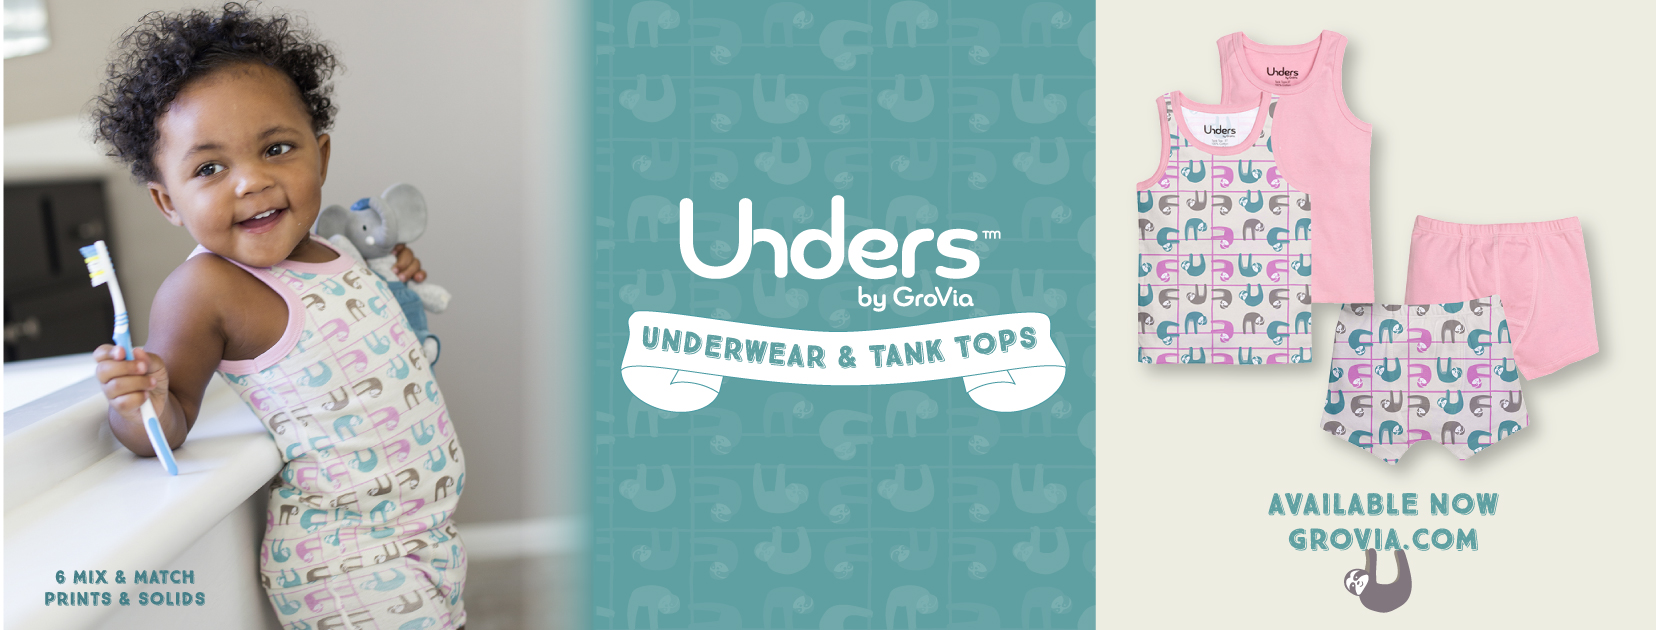 grovia_unders_ads_FB_Banner02.jpg